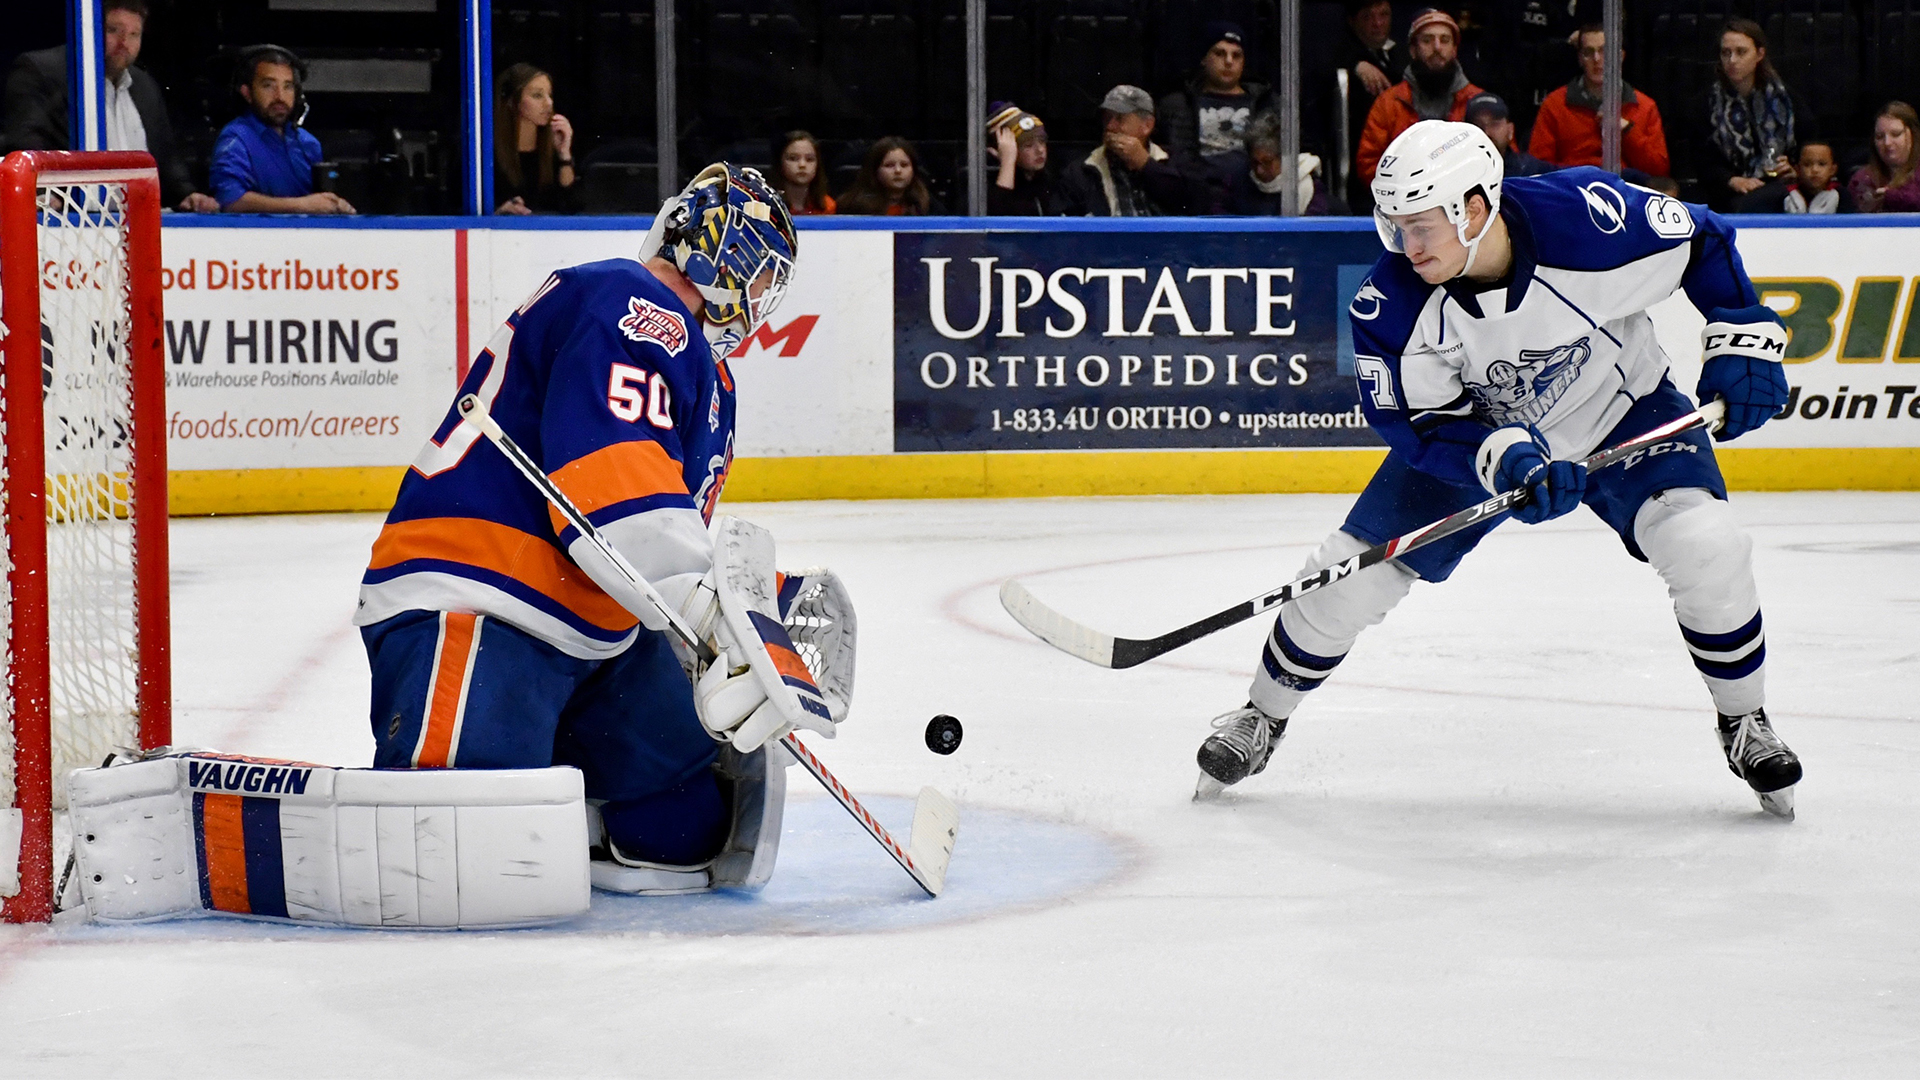 Syracuse Crunch overpower Bridgeport Sound Tigers, 5-1